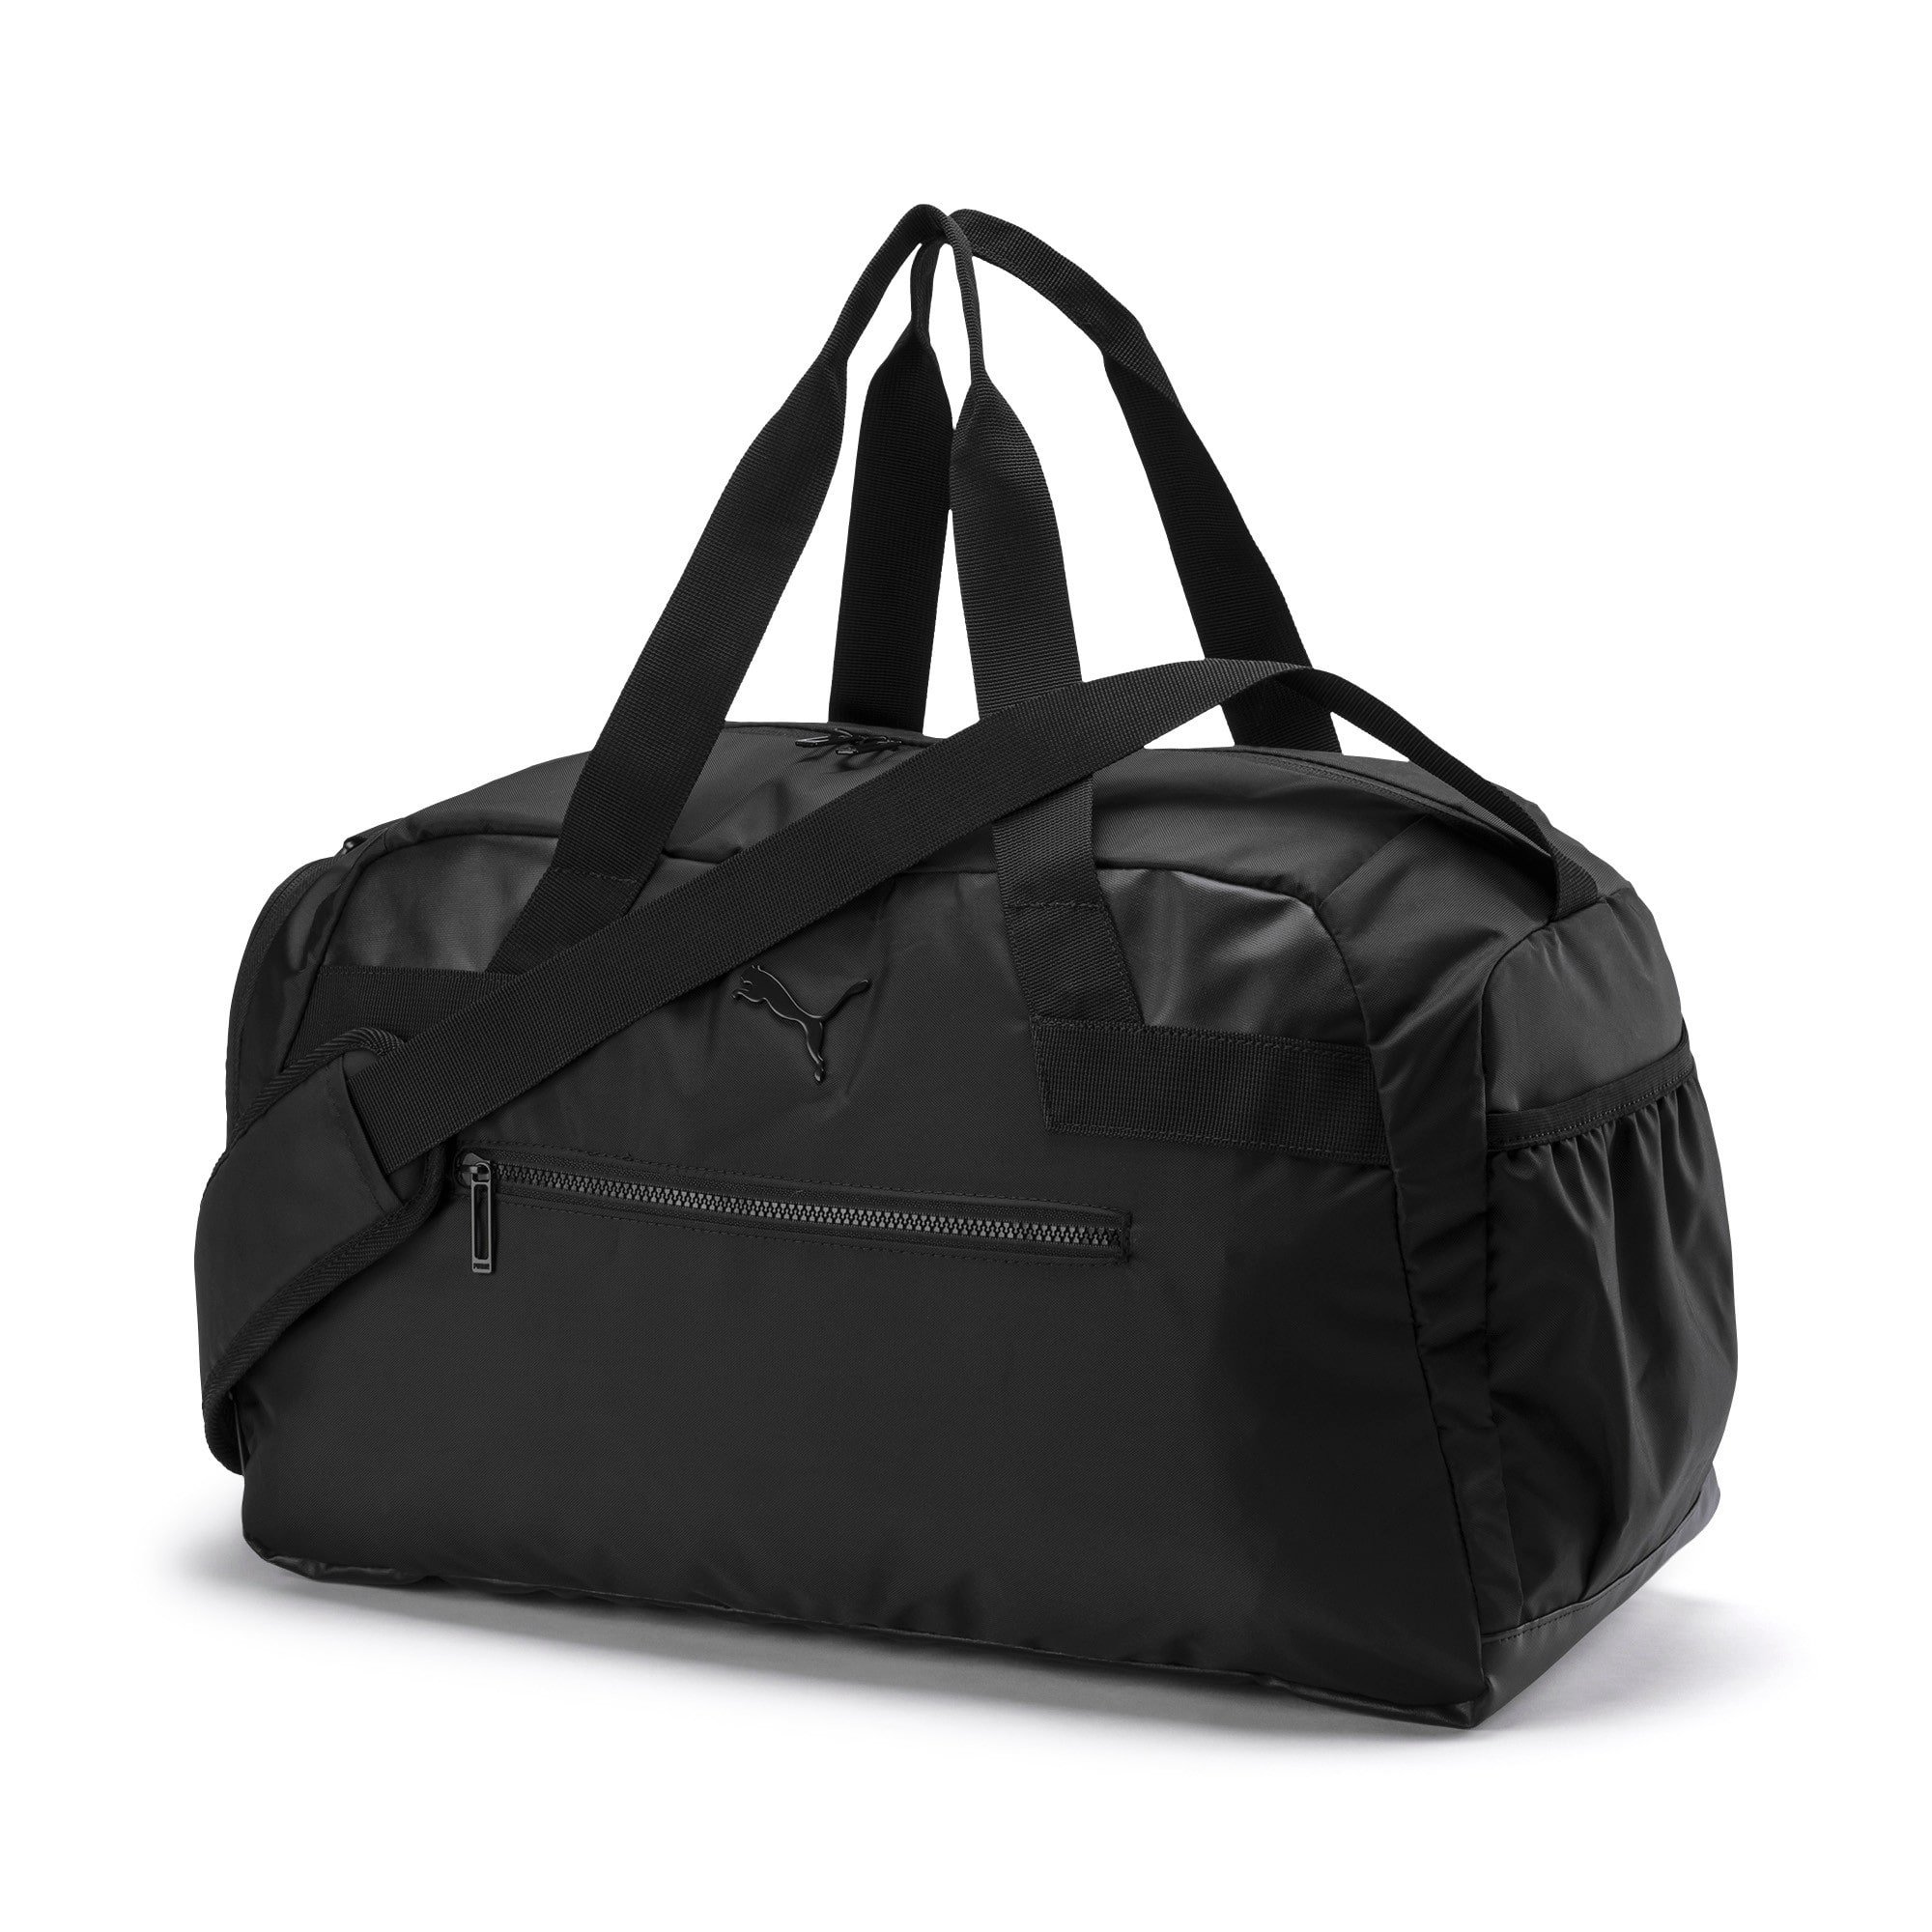 Thumbnail 1 of AT Sport Women's Duffel Bag, Puma Black, medium-IND